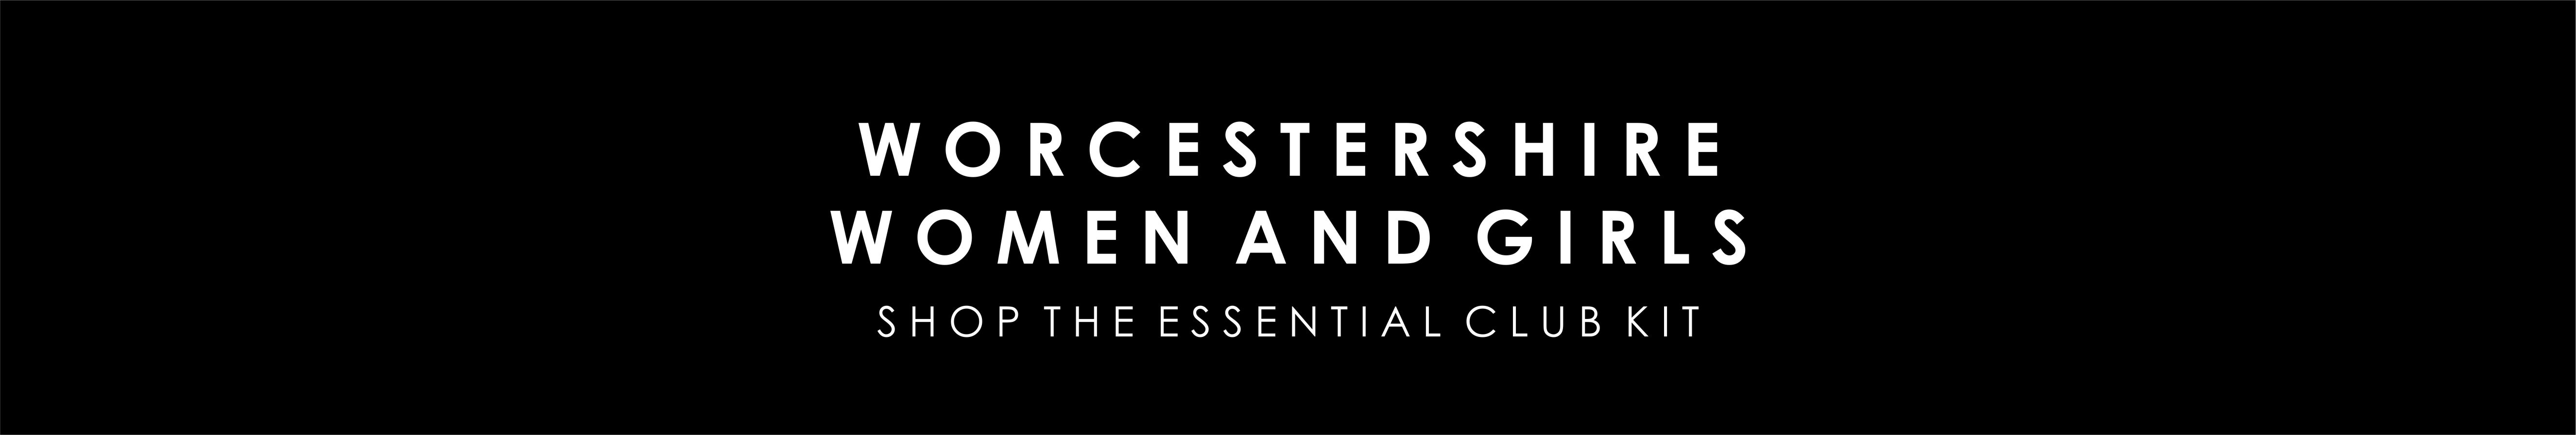 worcestershire-ccc-womens-and-girls-banner-new.jpg